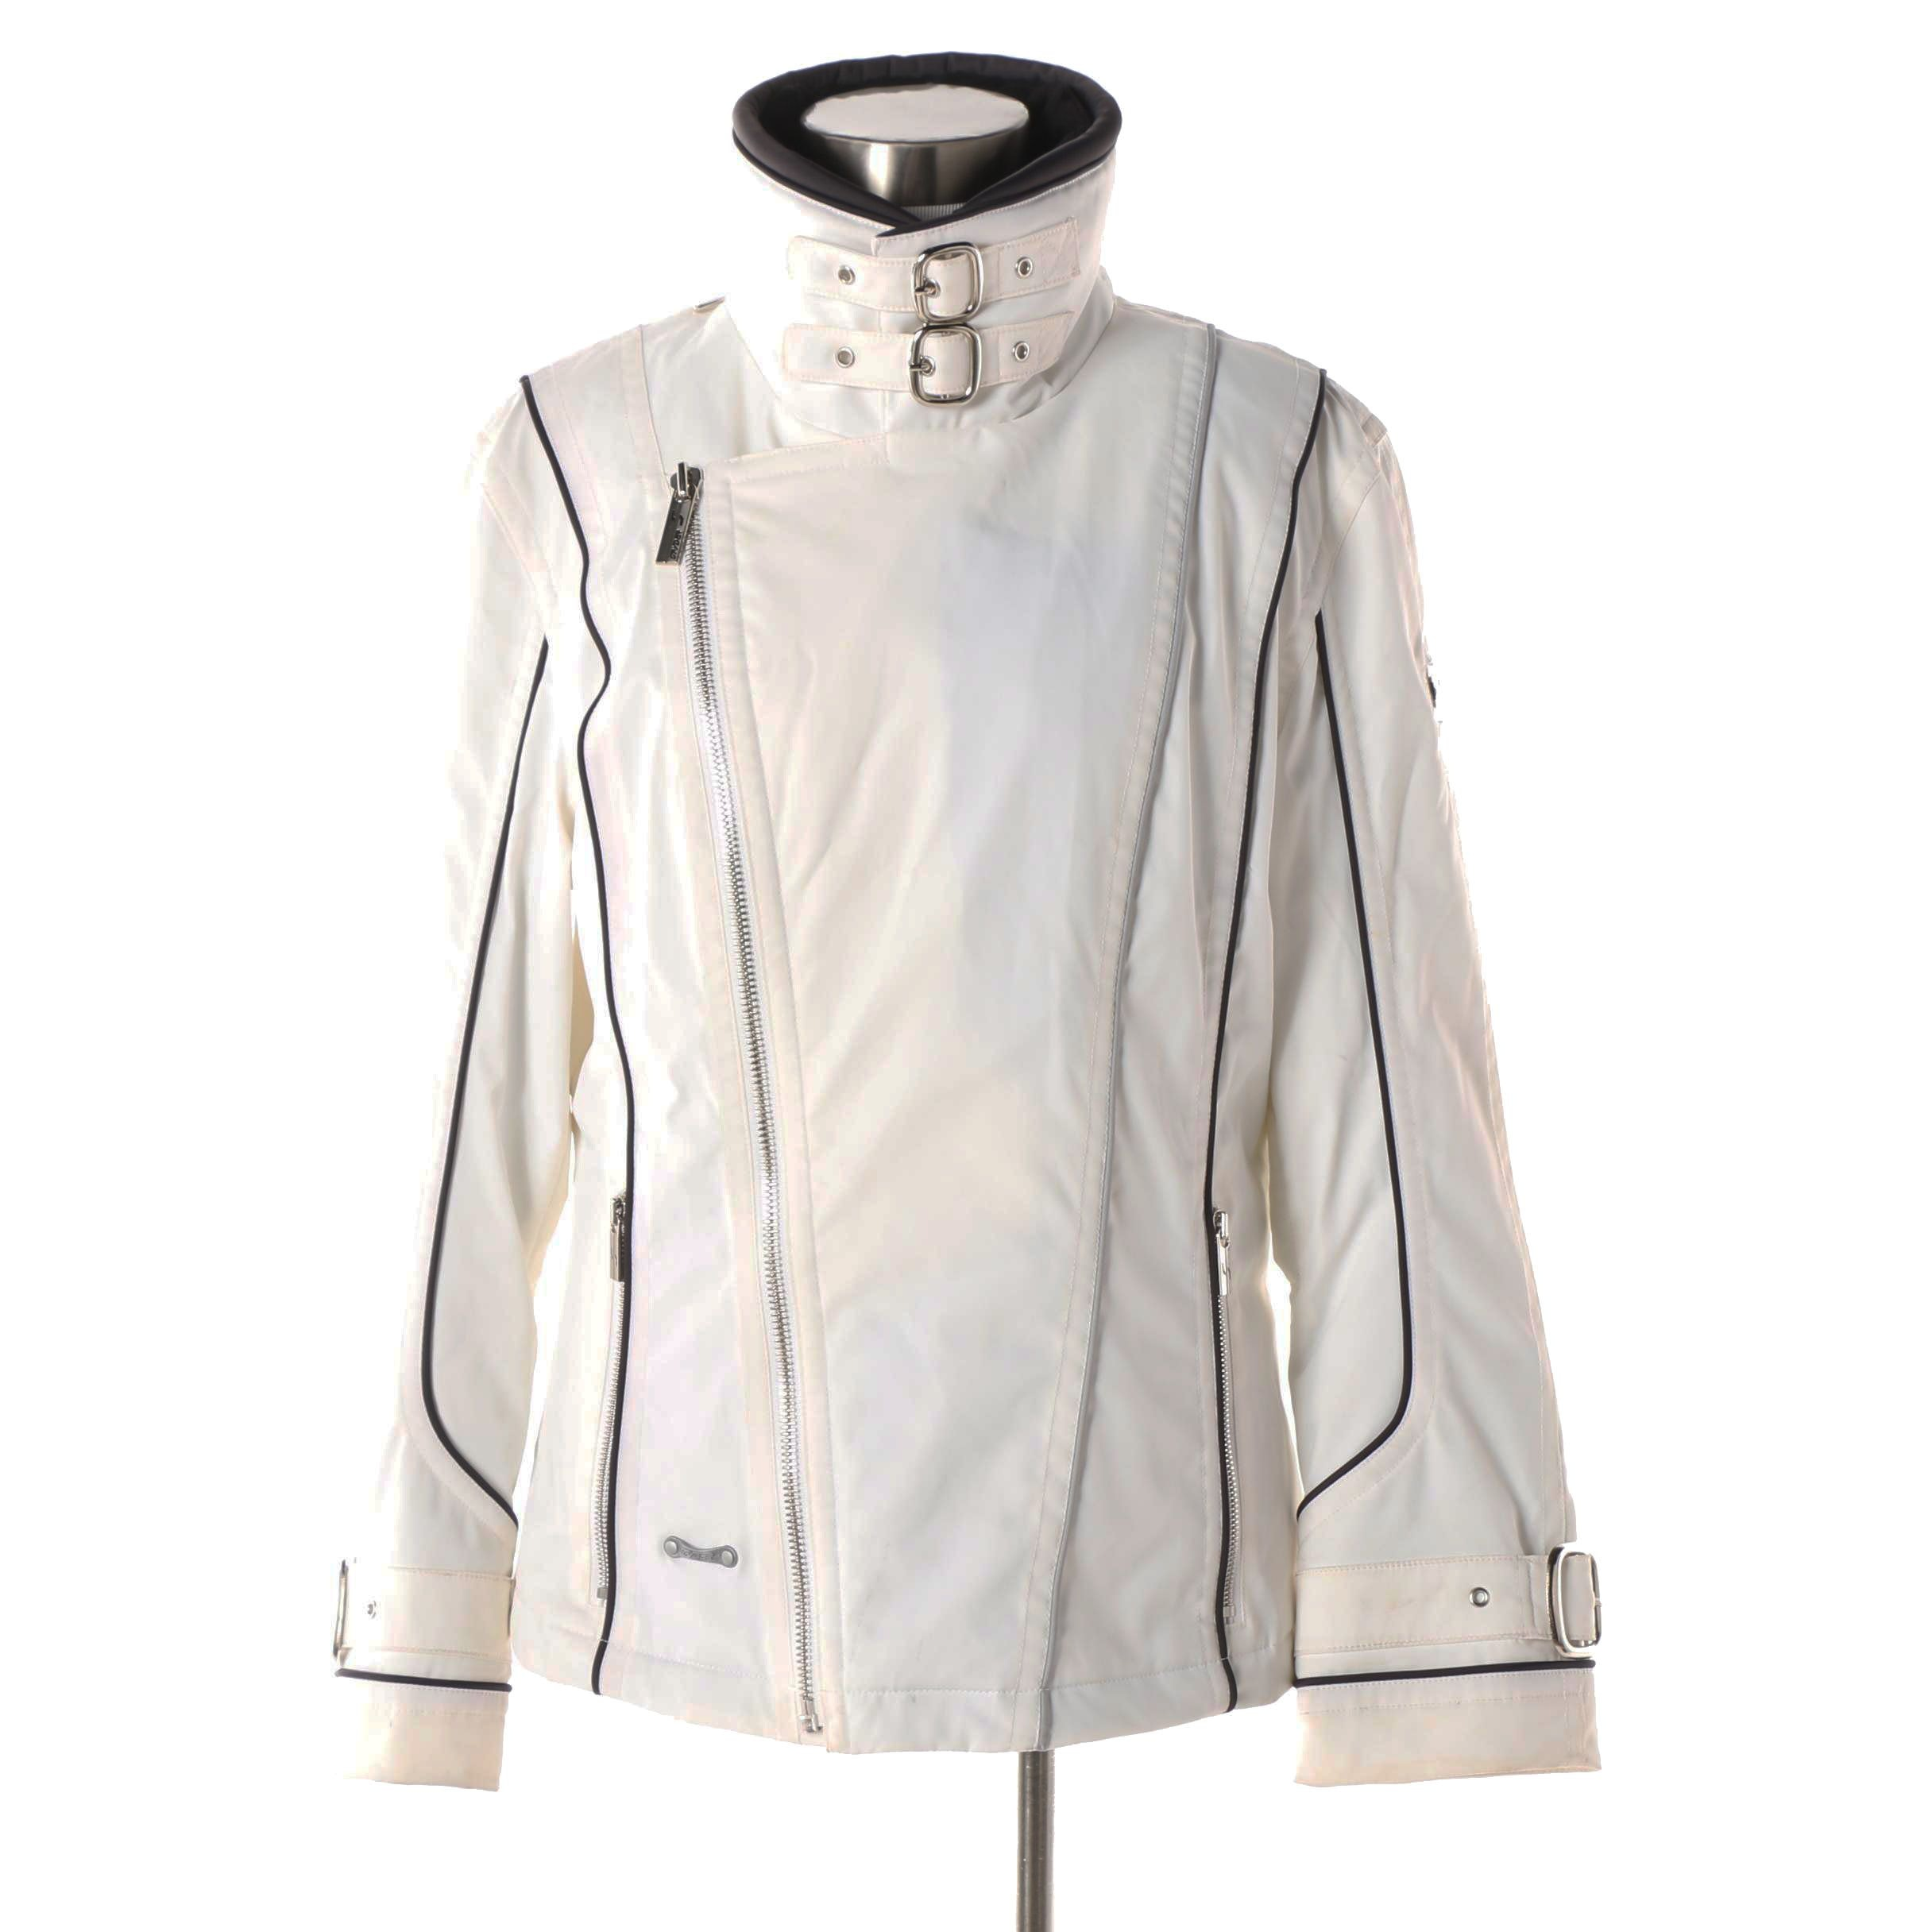 Women's Spyder XTL 10,000 White Ski Jacket with Thinsulate Insulation